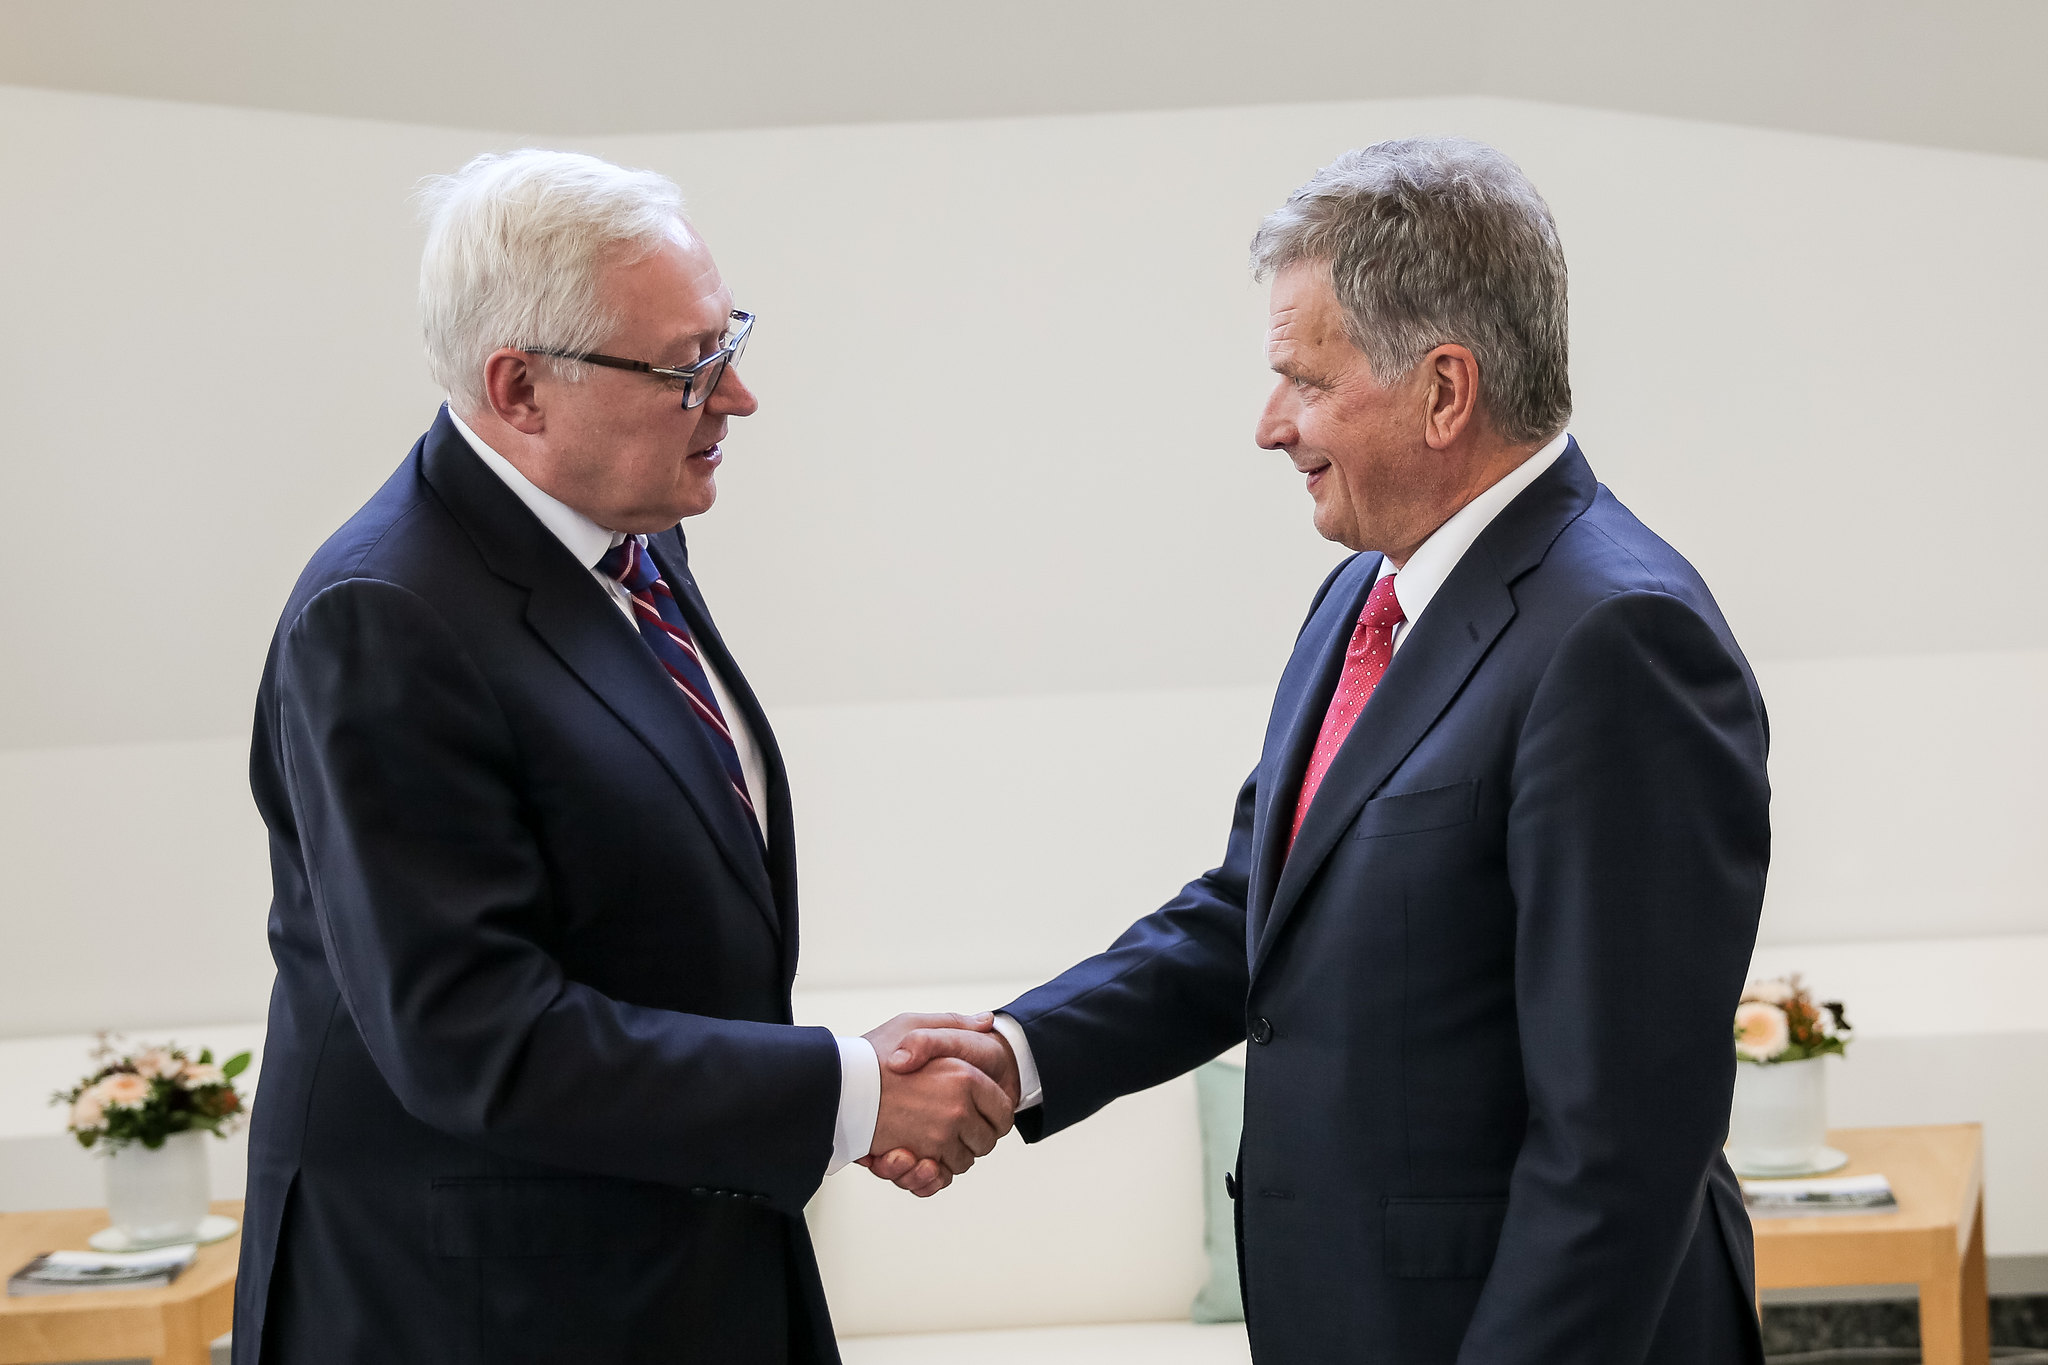 President Niinistö met with Deputy Foreign Minister of Russia Sergei Ryabkov in Mäntyniemi on September 12 2017. Photograph: Matti Porre/Office of the President of the Republic of Finland